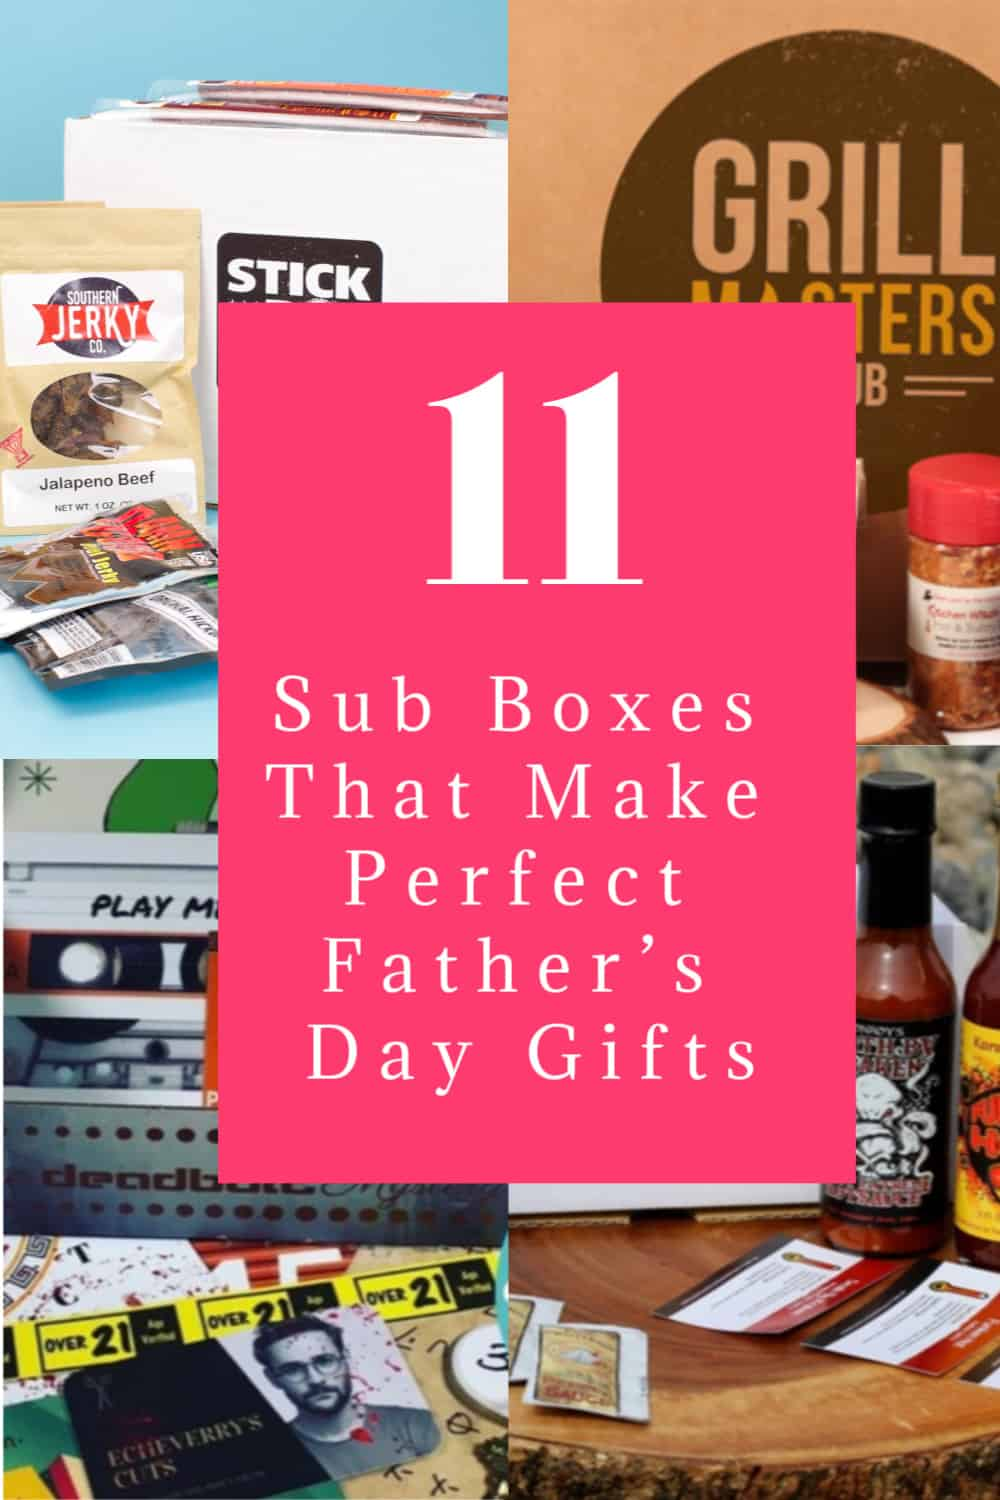 If you're at a loss for ideas for dad, I've got you covered. Check out these subscription boxes that make great Father's Day Gifts!